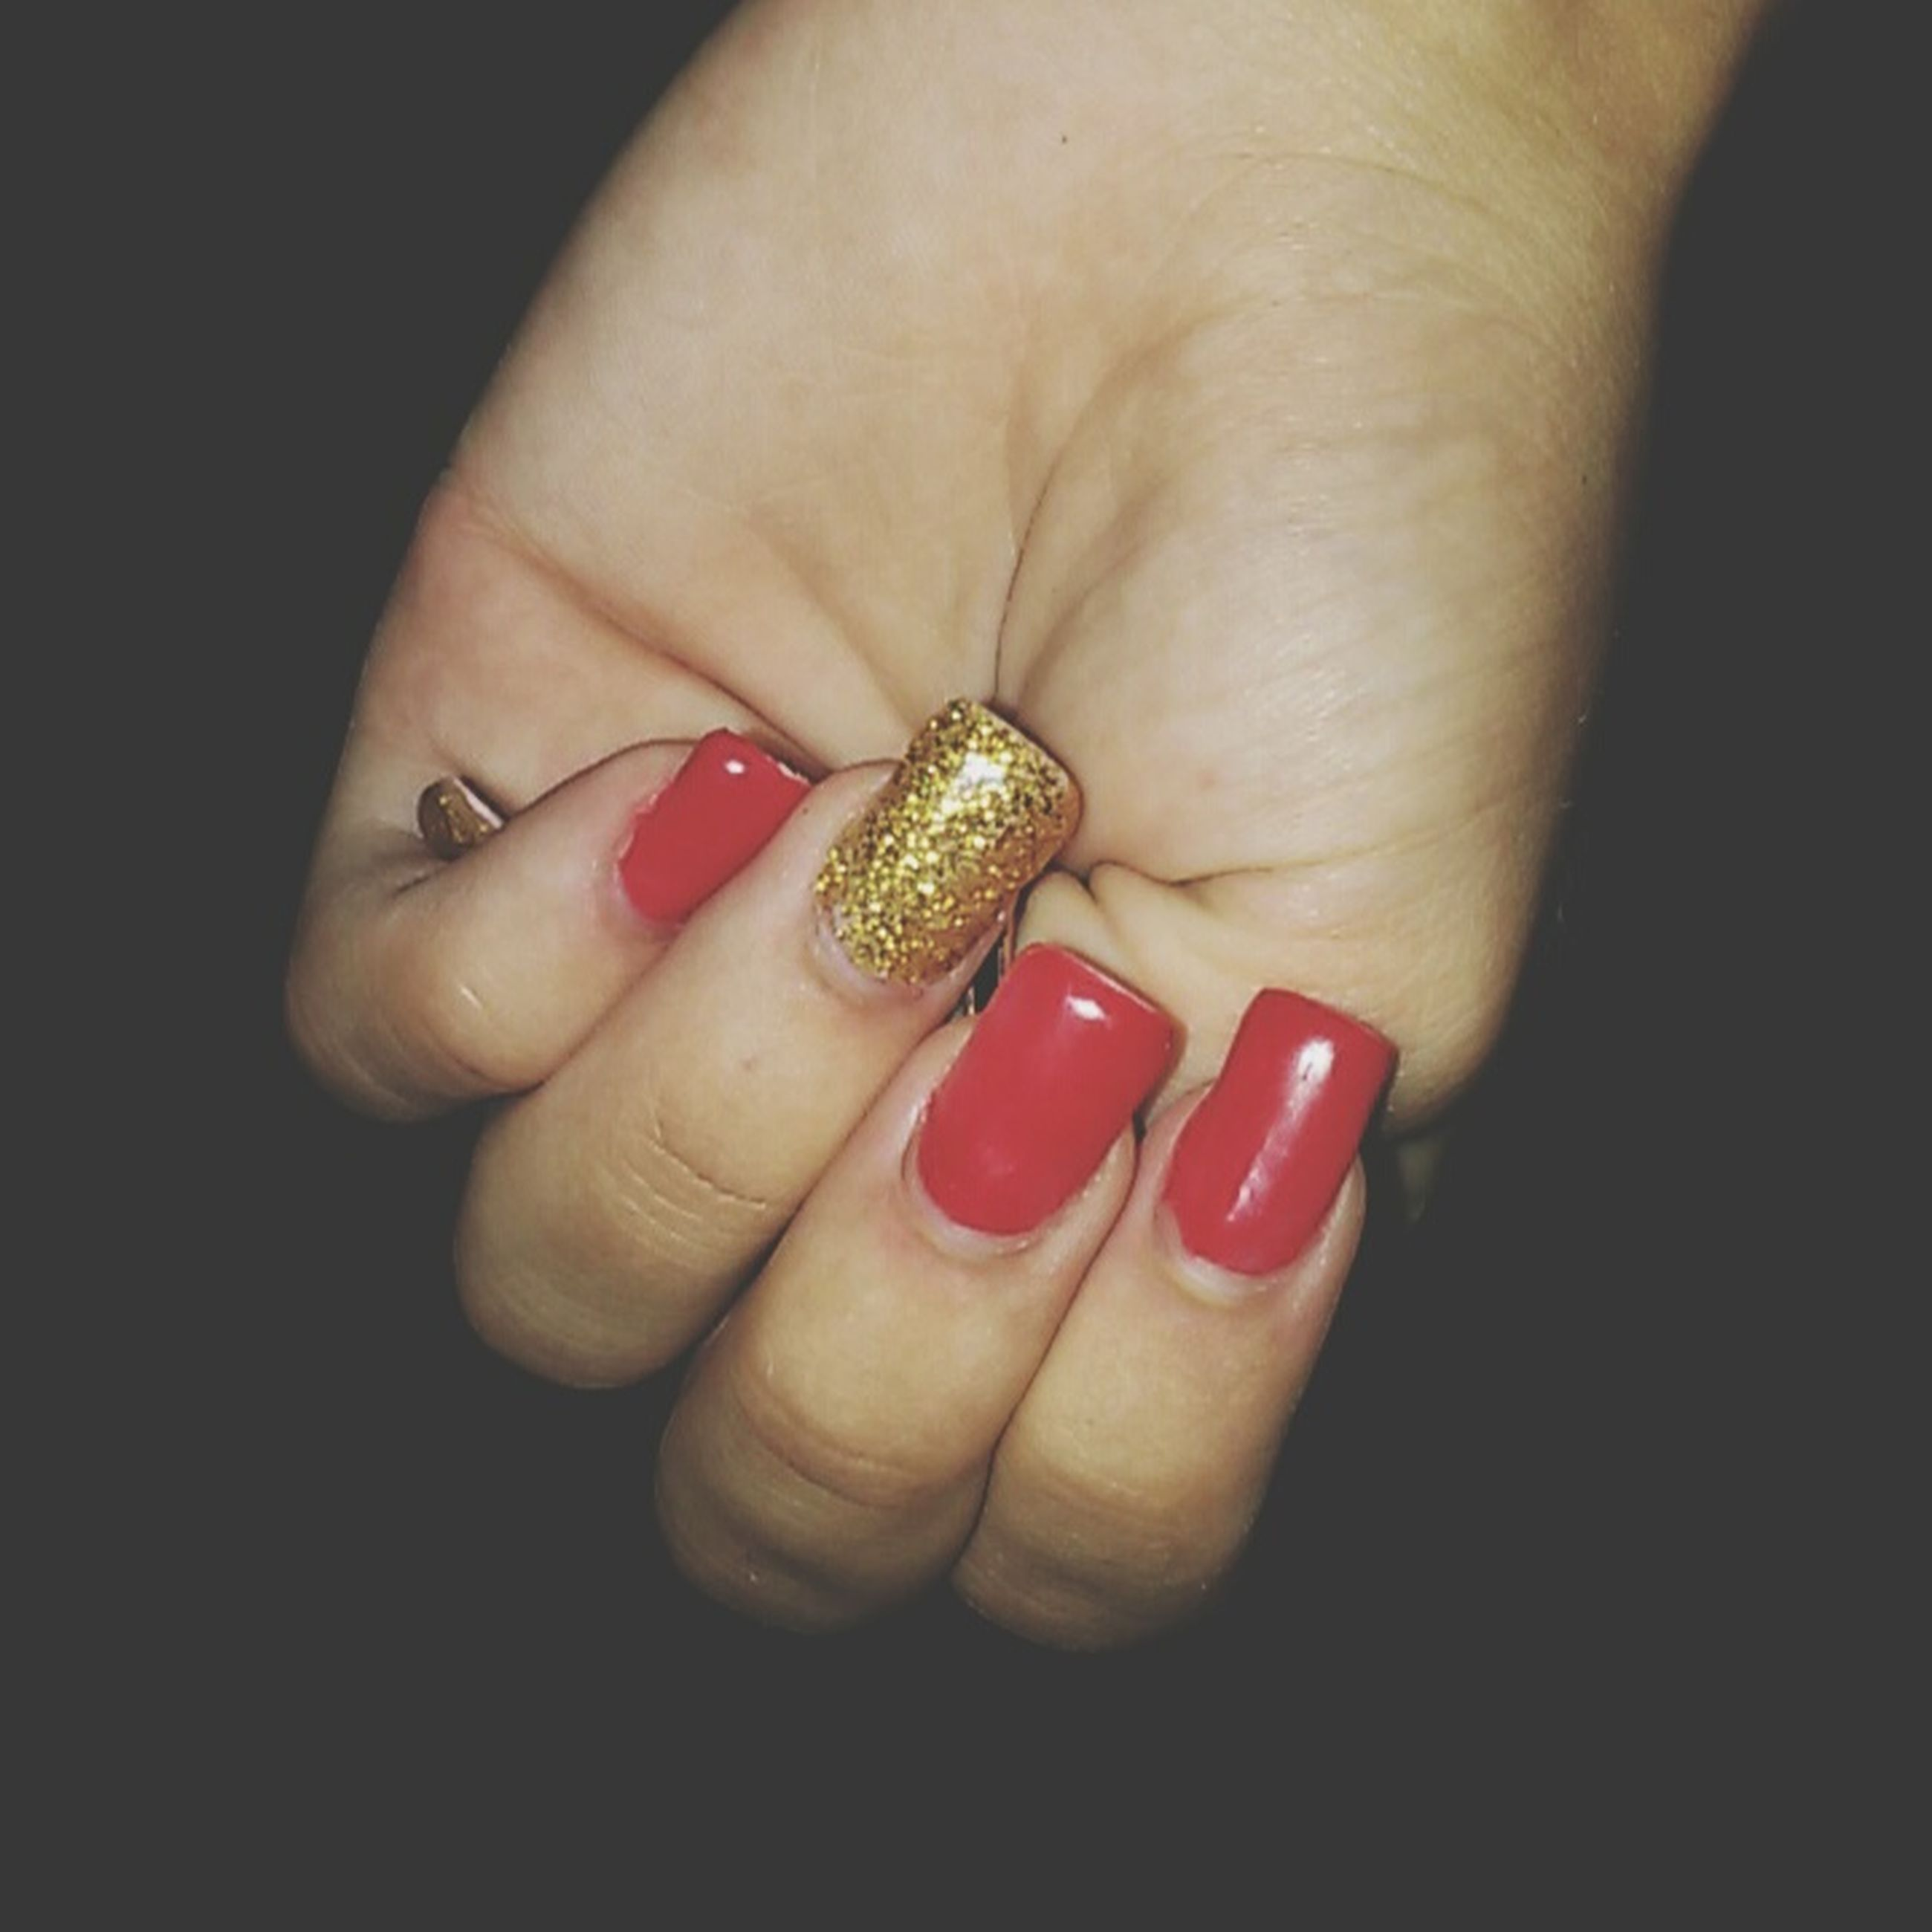 person, part of, holding, human finger, cropped, close-up, studio shot, unrecognizable person, ring, palm, red, nail polish, showing, lifestyles, personal perspective, indoors